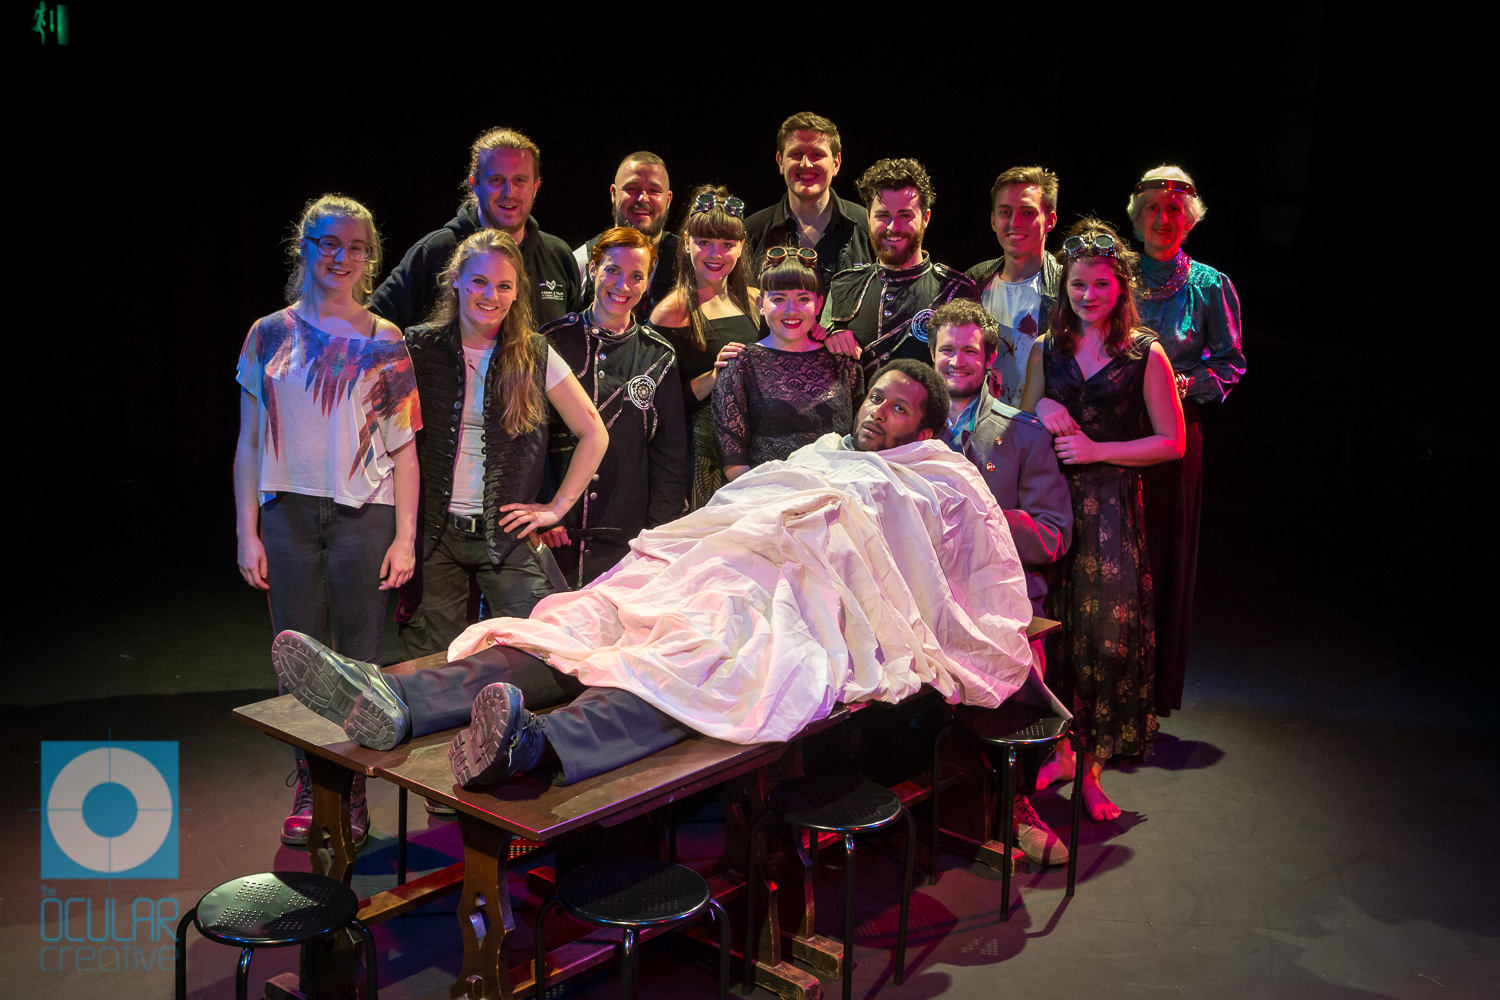 The Cast & Crew of Macbeth